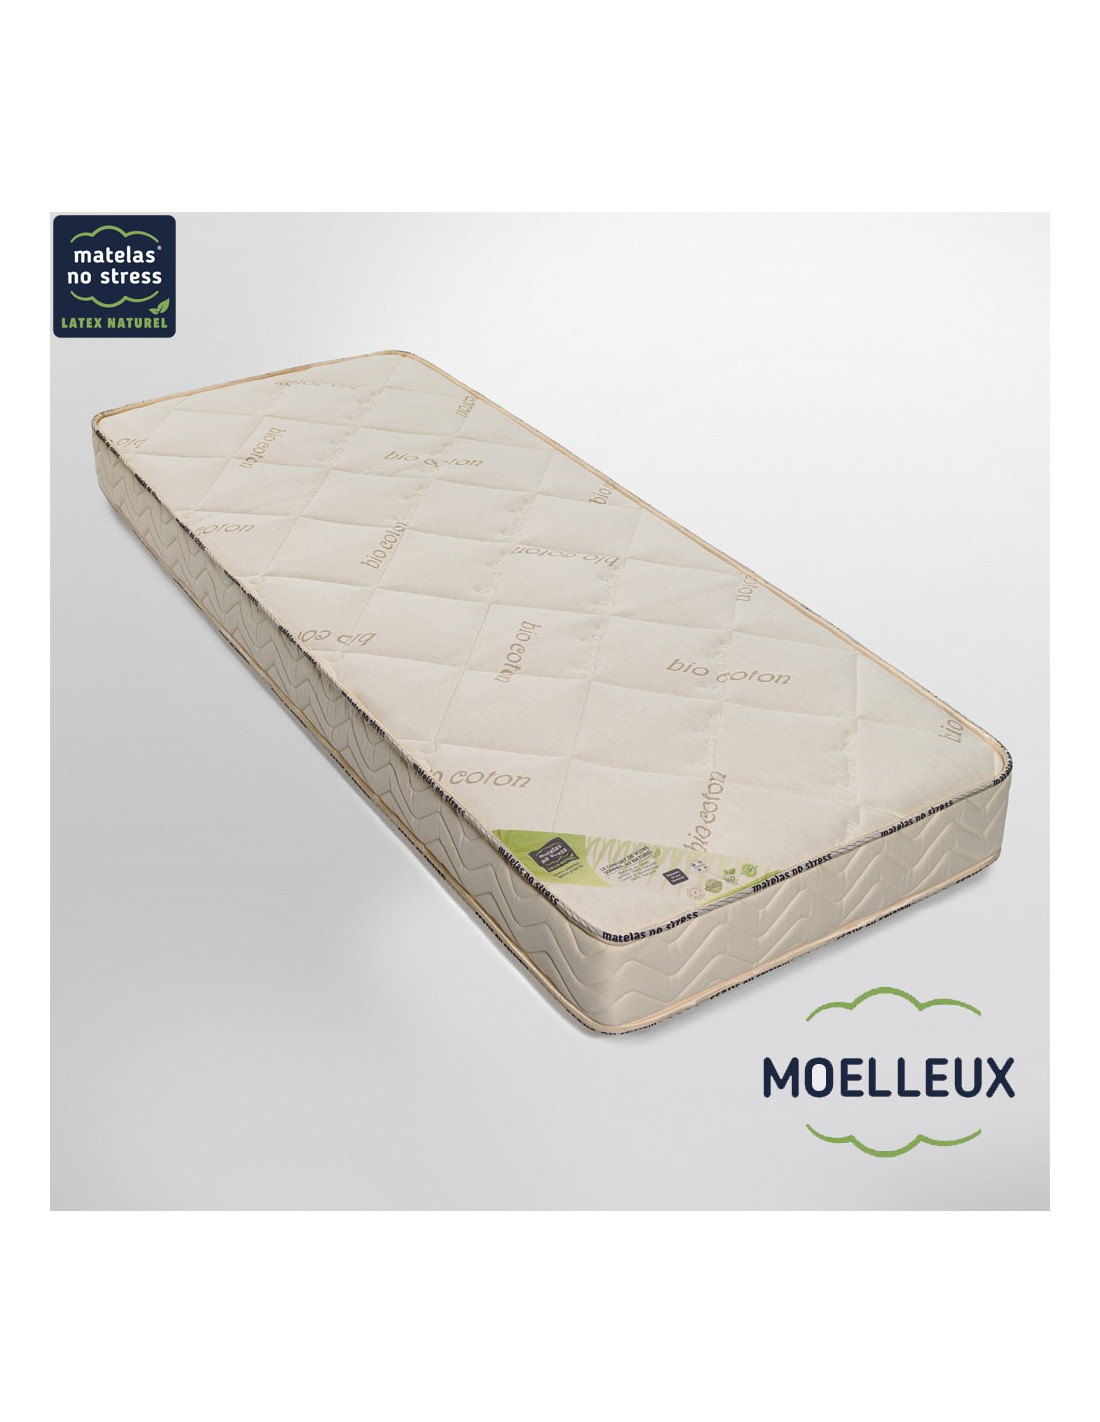 matelas moelleux 180x200 latex naturel. Black Bedroom Furniture Sets. Home Design Ideas